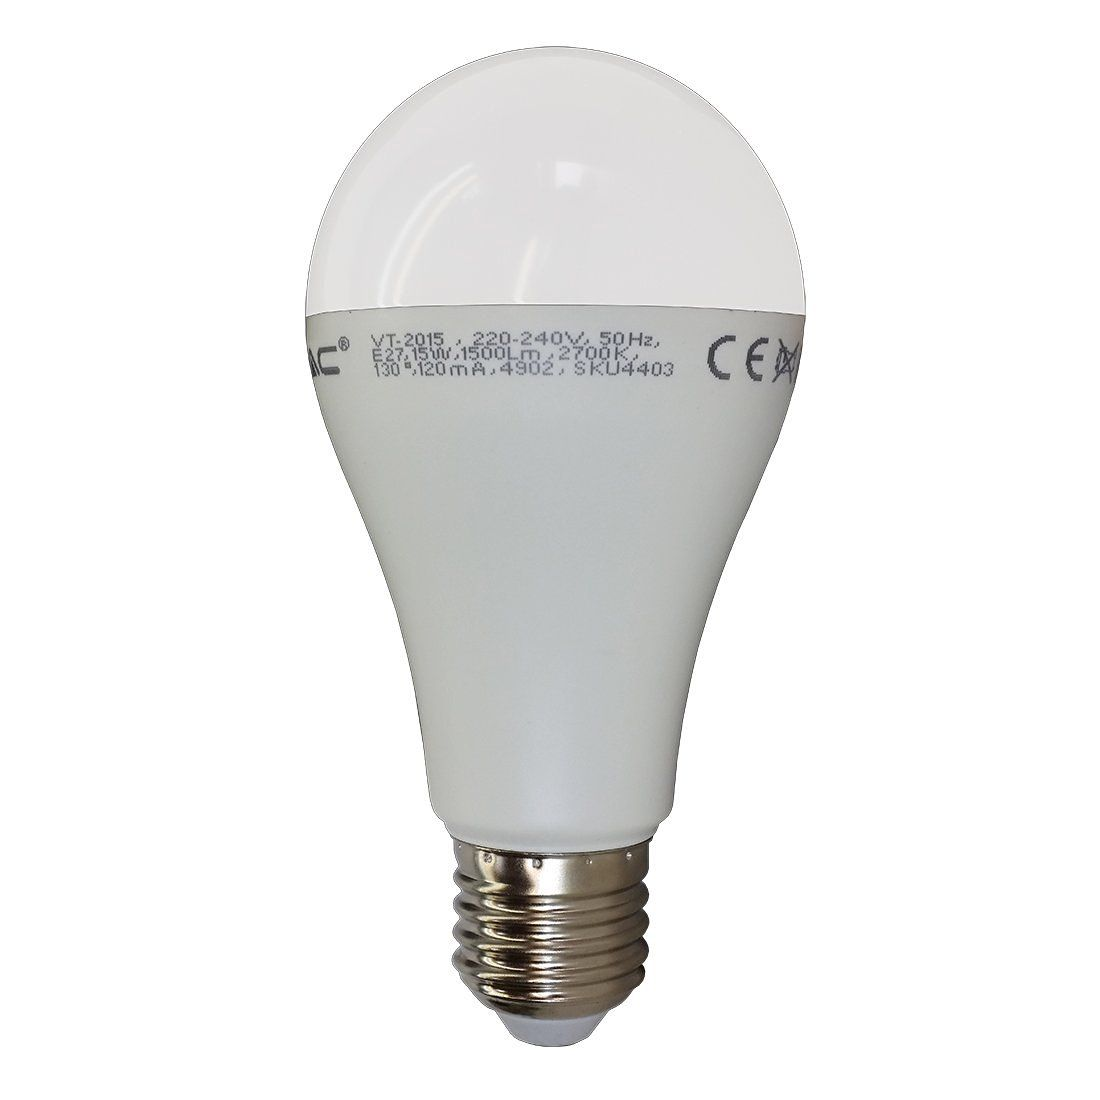 100w equivalent led bulb e27 classic gls globe warm white v tac. Black Bedroom Furniture Sets. Home Design Ideas